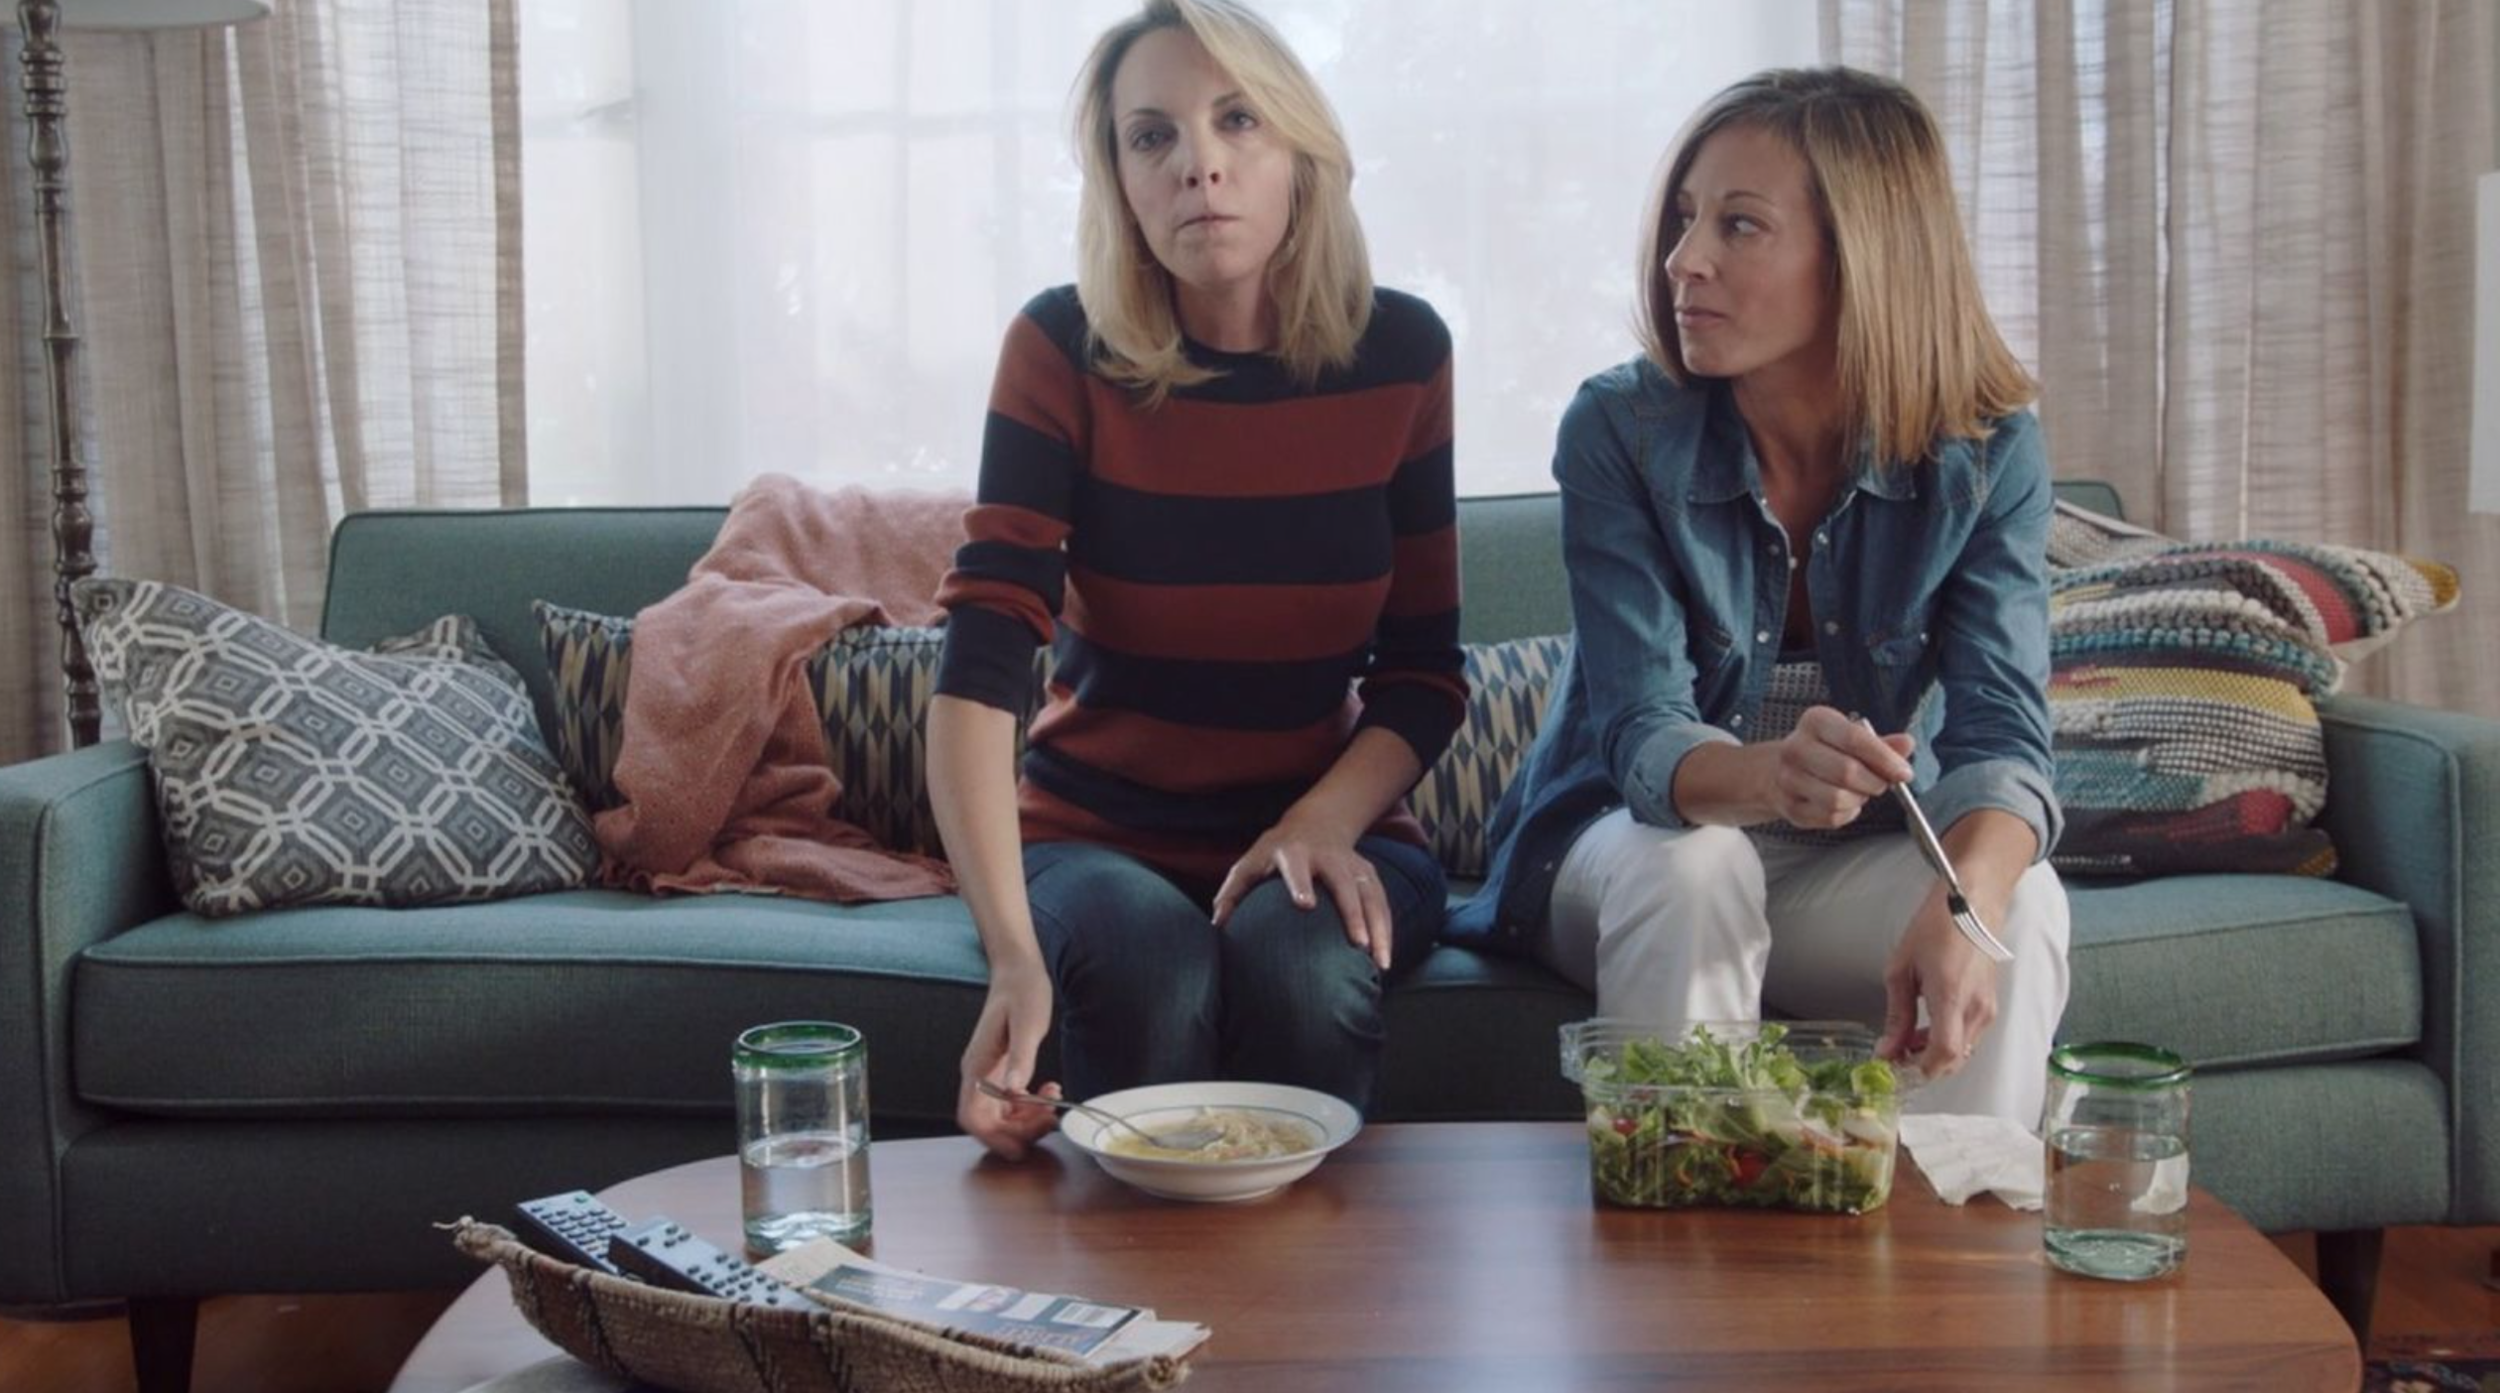 Food Commercials Pave The Way for LGBTQ Representation in Advertising  ,  Mic , February 2017